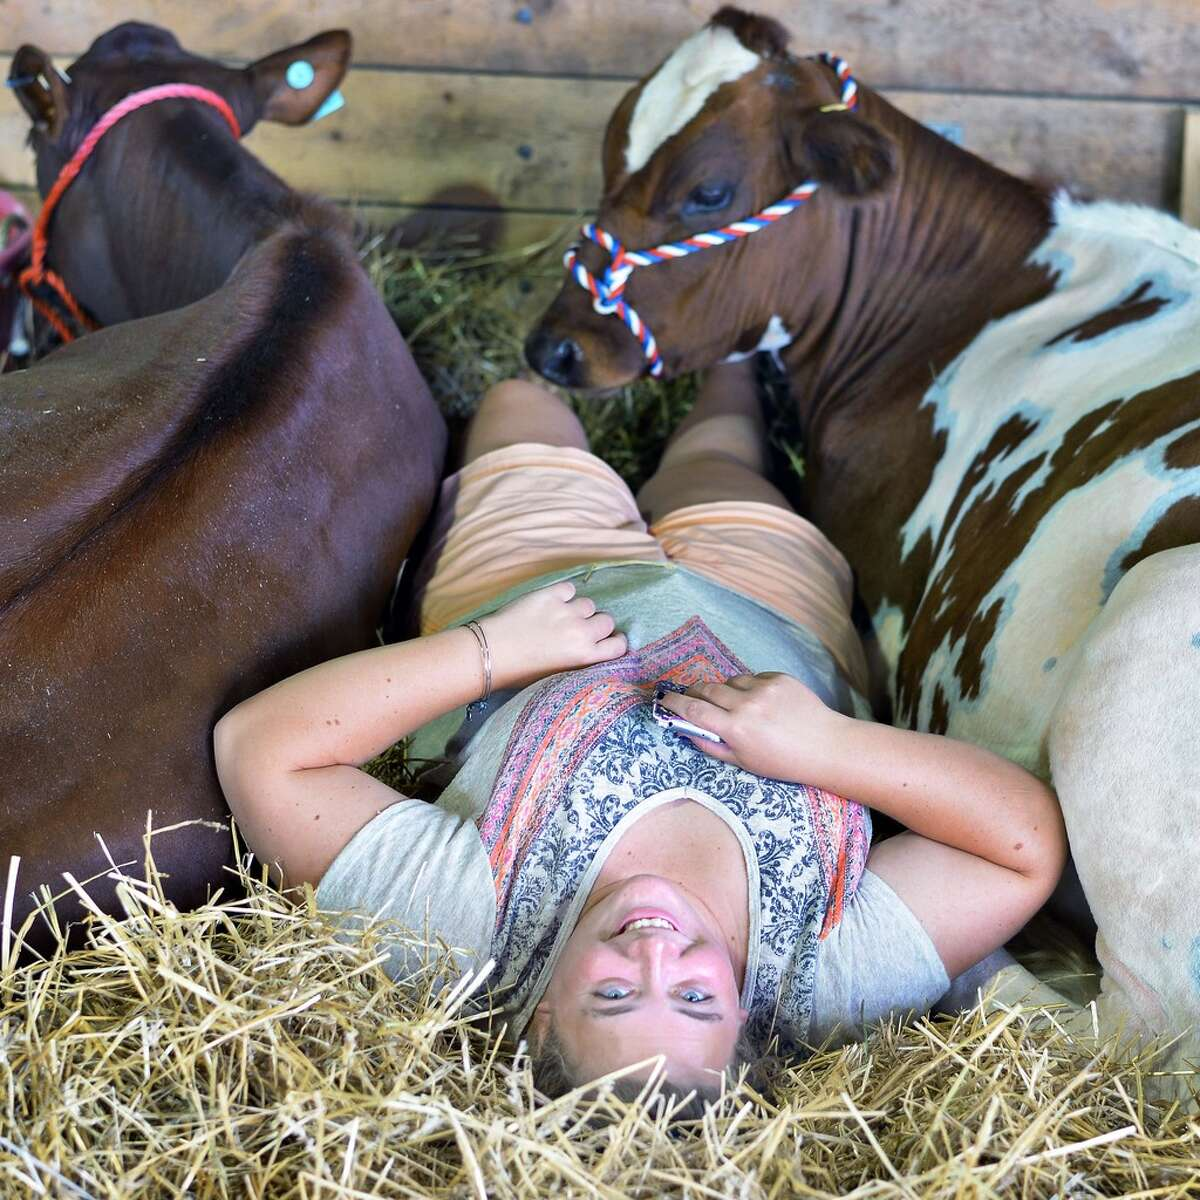 Margaret Brownell of Greenwich with her cows as the Saratoga County Fair begins Tuesday July 21, 2015 in Ballston Spa, NY. (John Carl D'Annibale / Times Union)